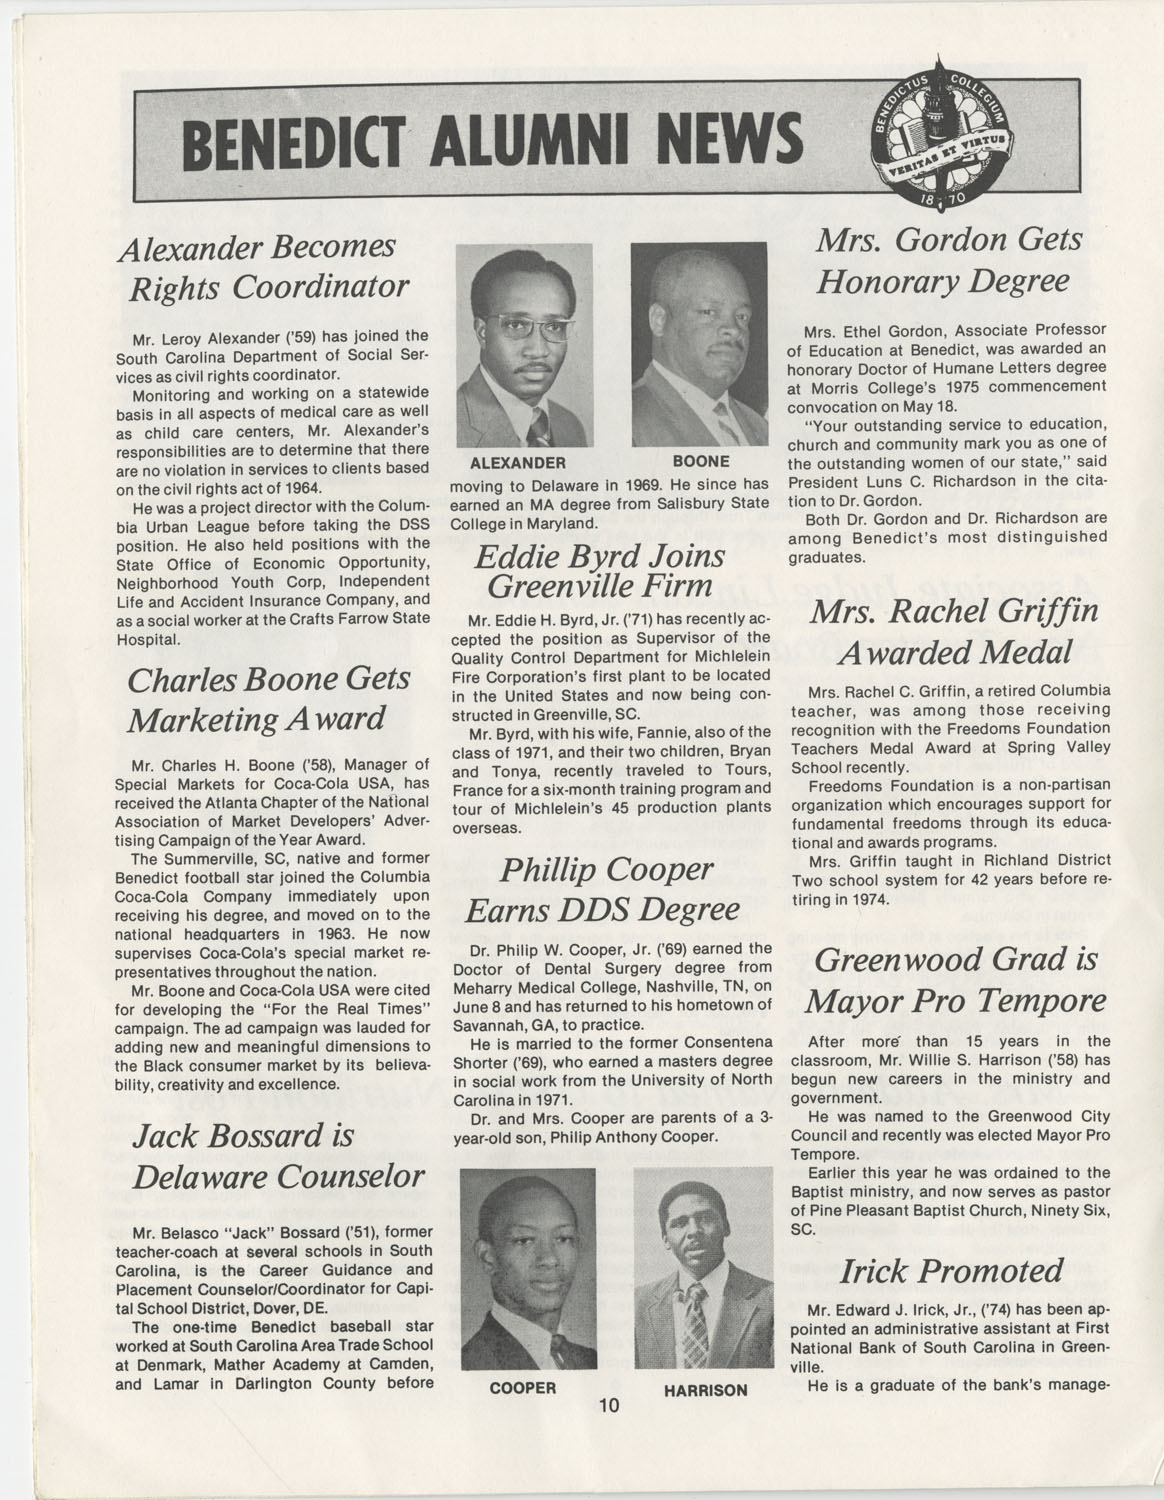 The Benedict Bulletin, September 1975, Page 10